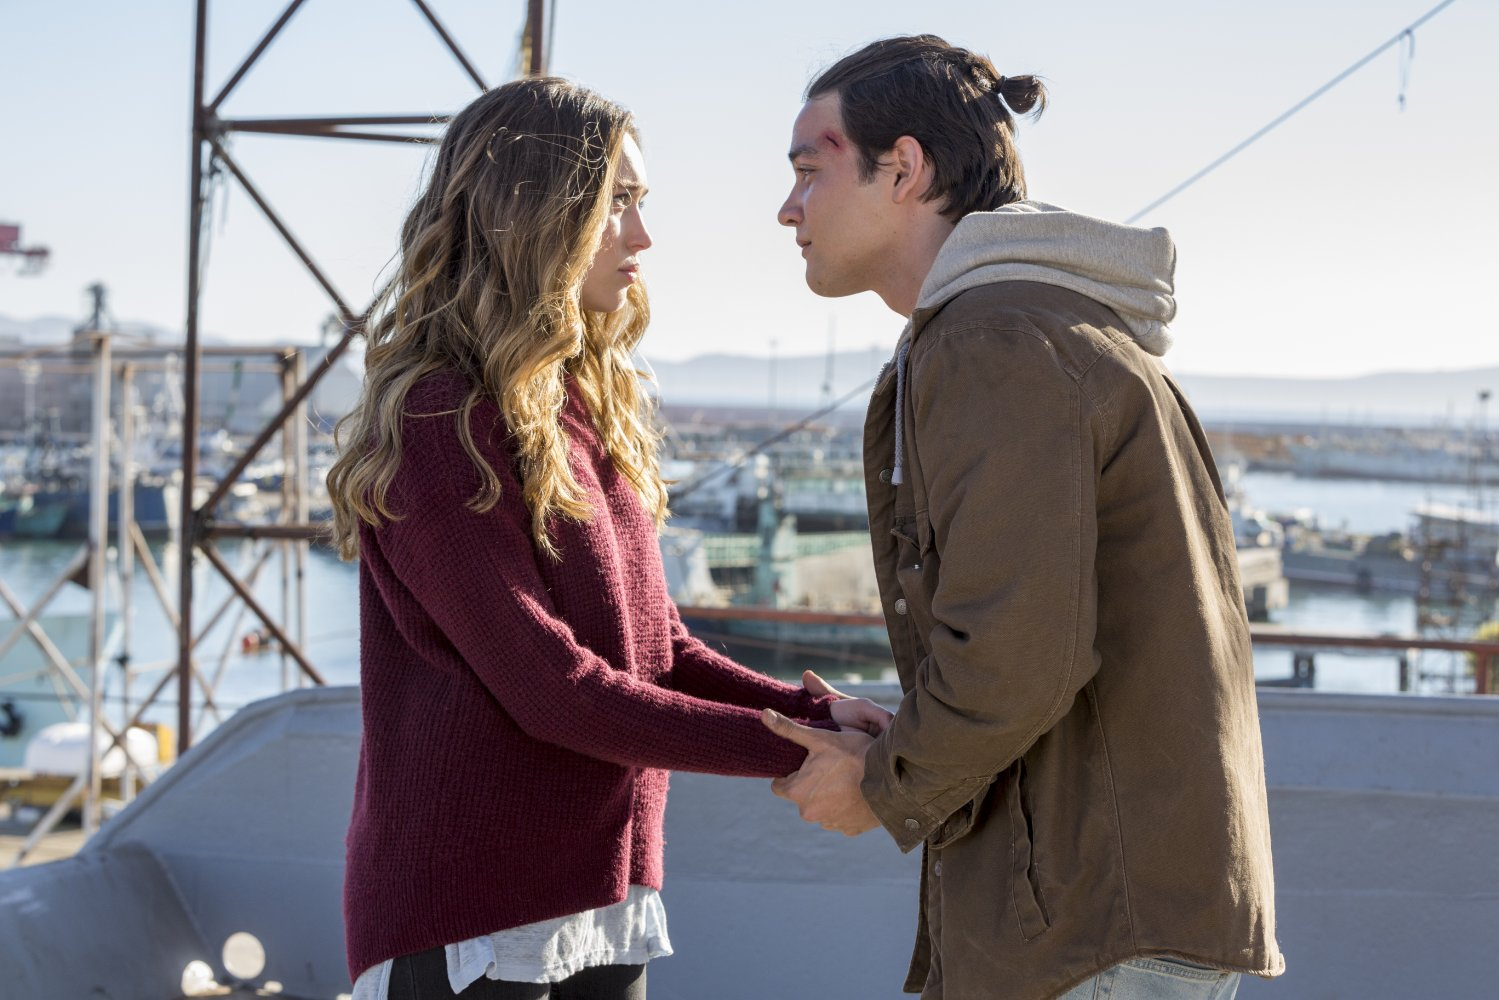 Fear the Walking Dead: Captive